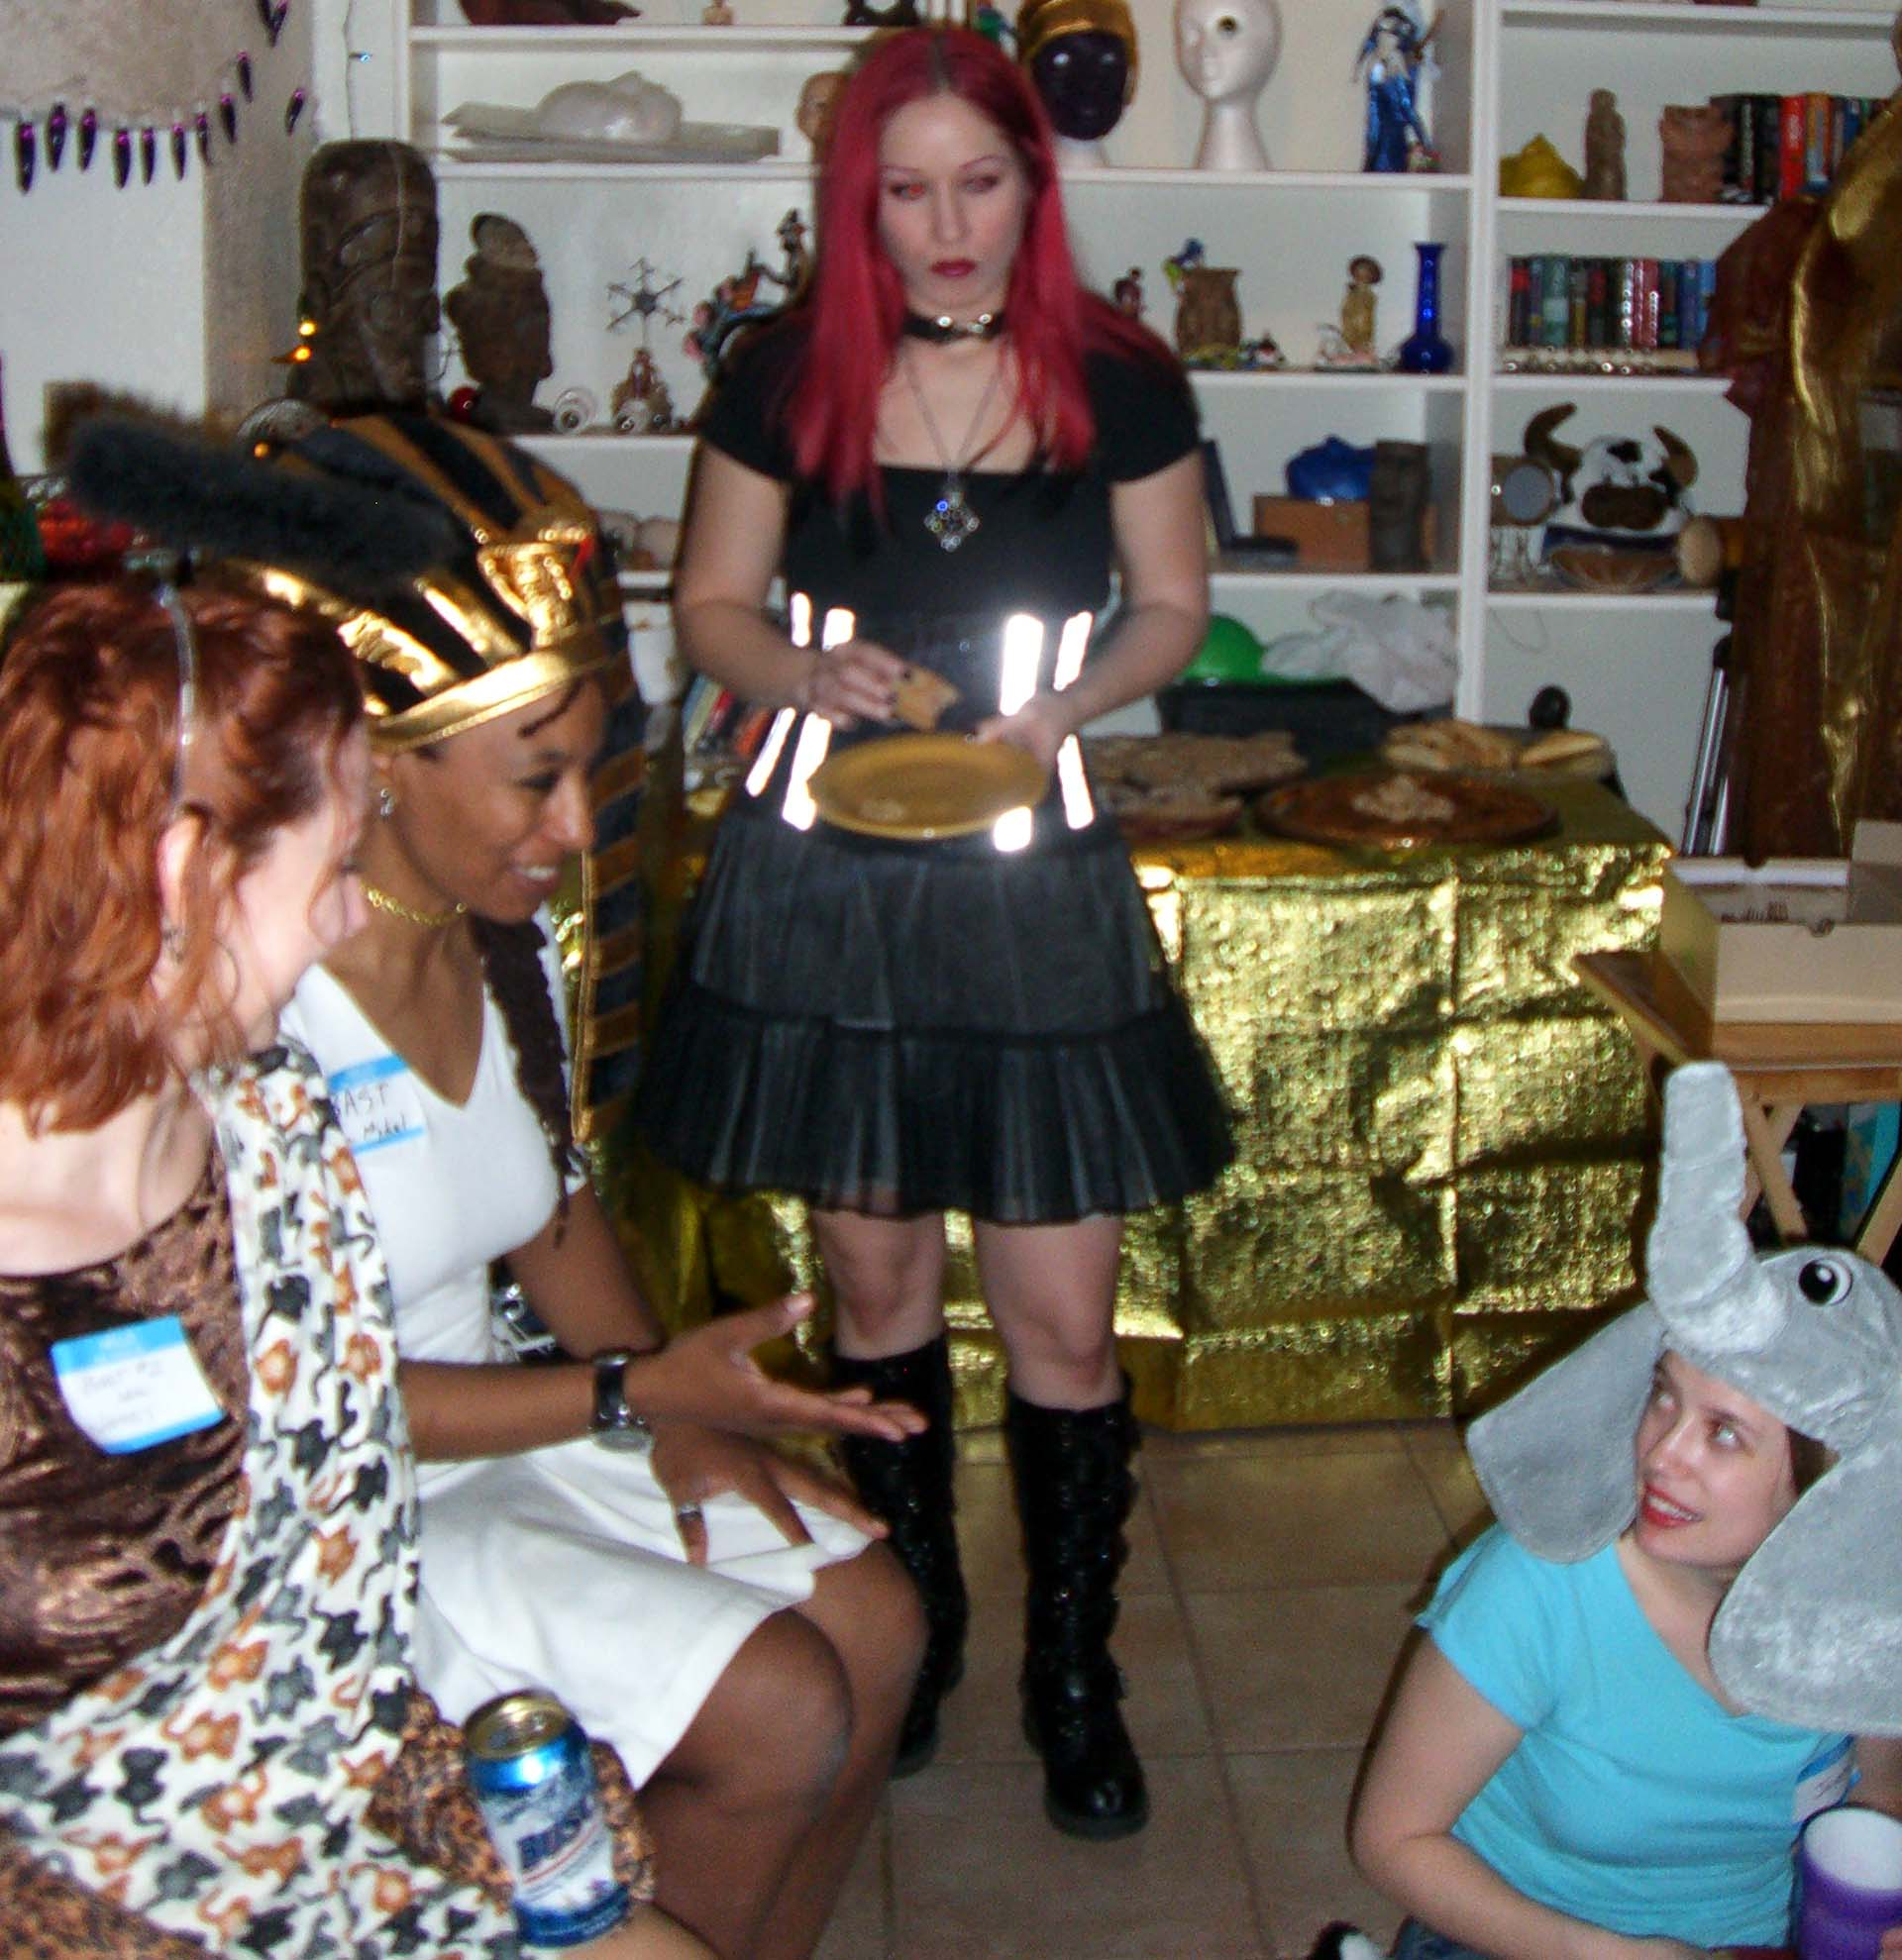 Second annual Ye Gods party, 2007